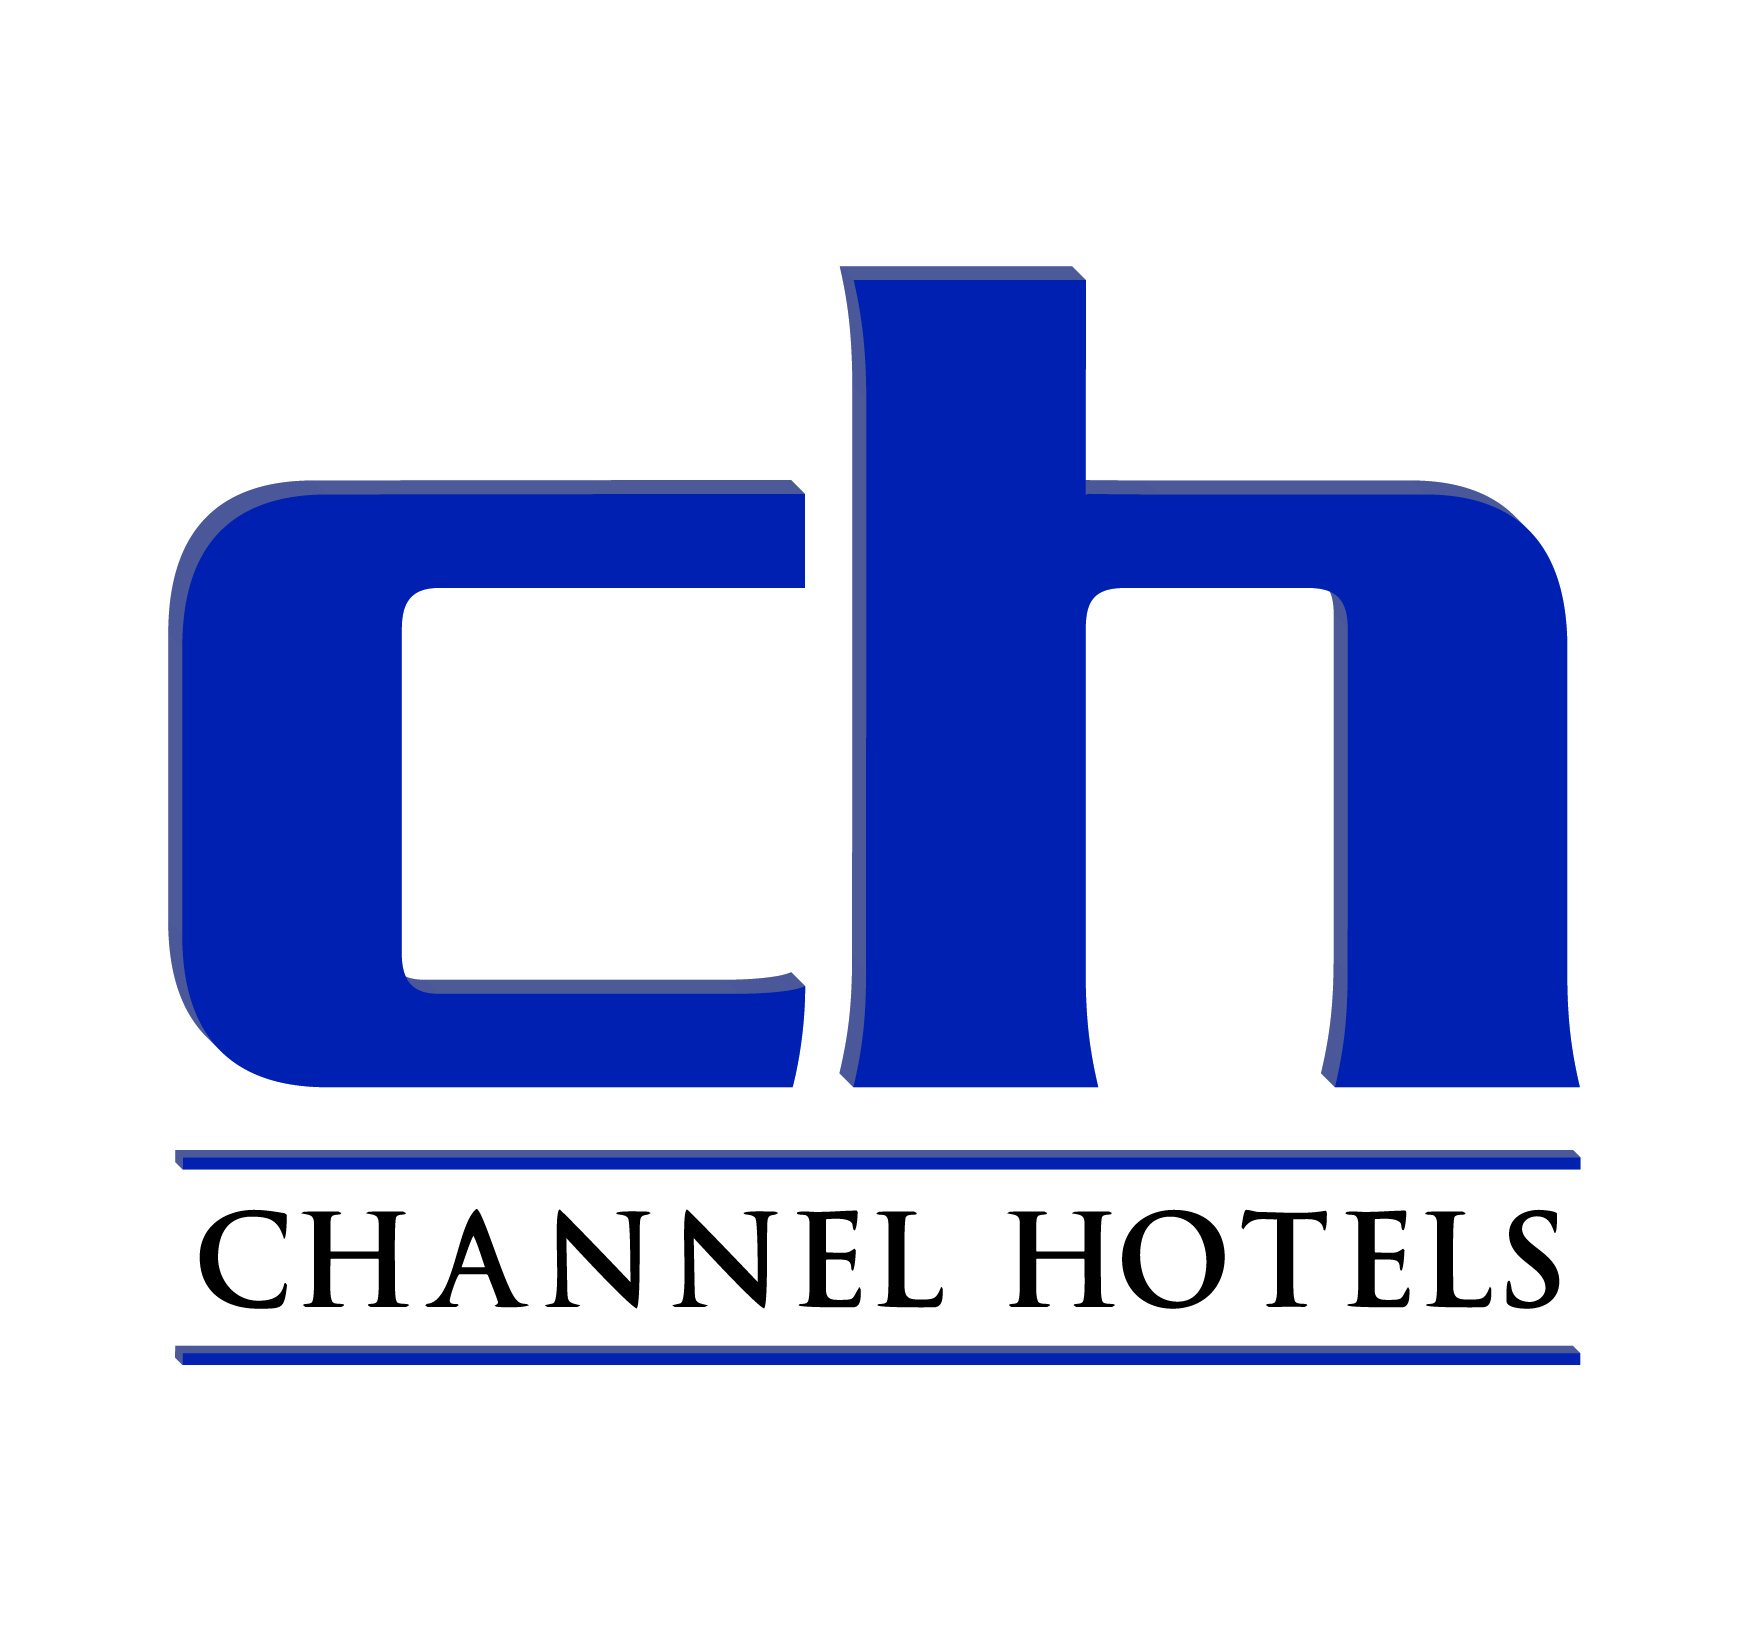 24045 - CHANNEL HOTELS - LOGO - CMYK - WHITE BC.jpg